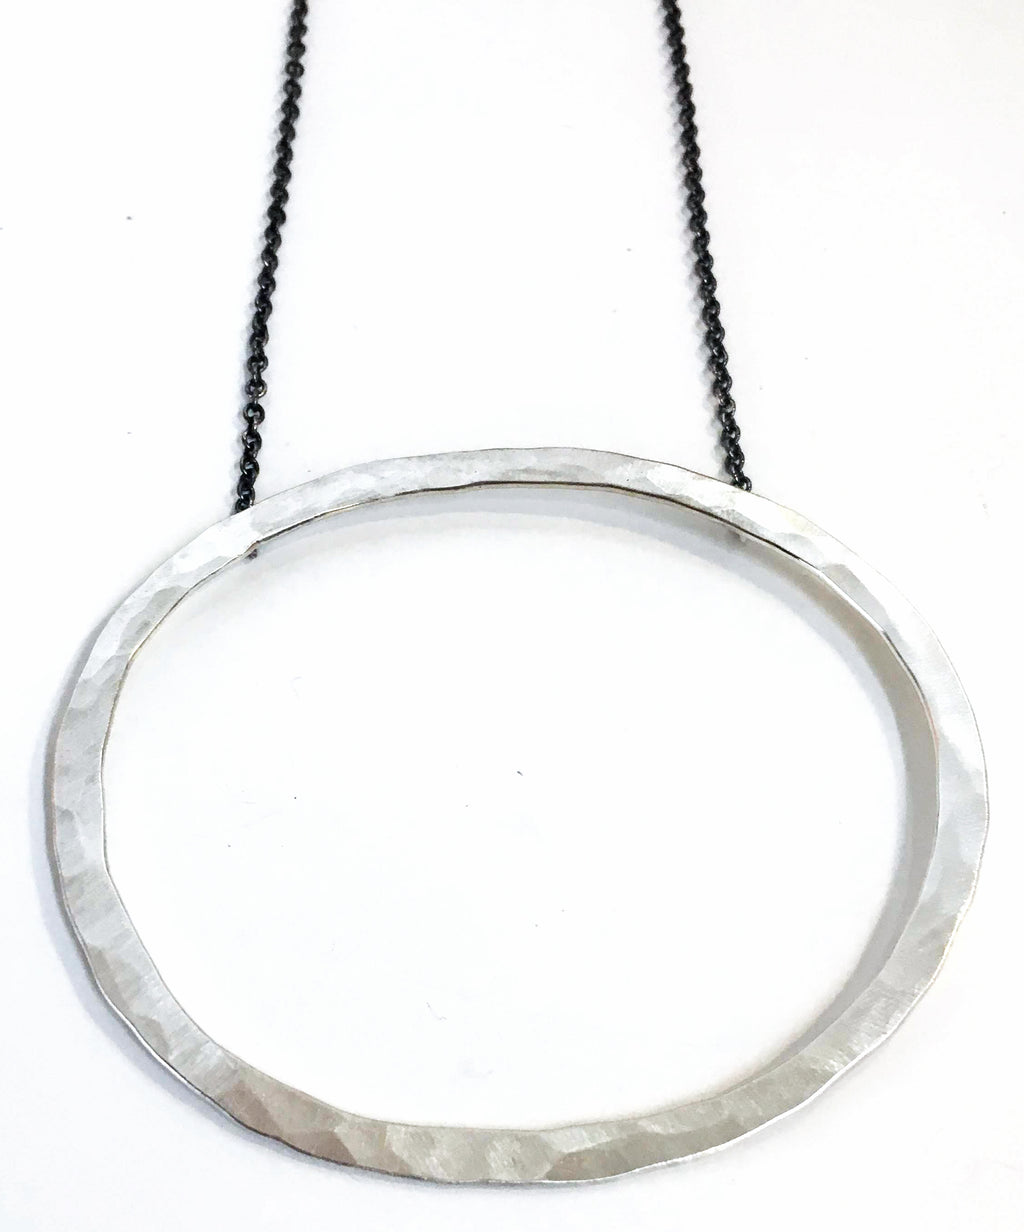 XL Oval Hammered Necklace